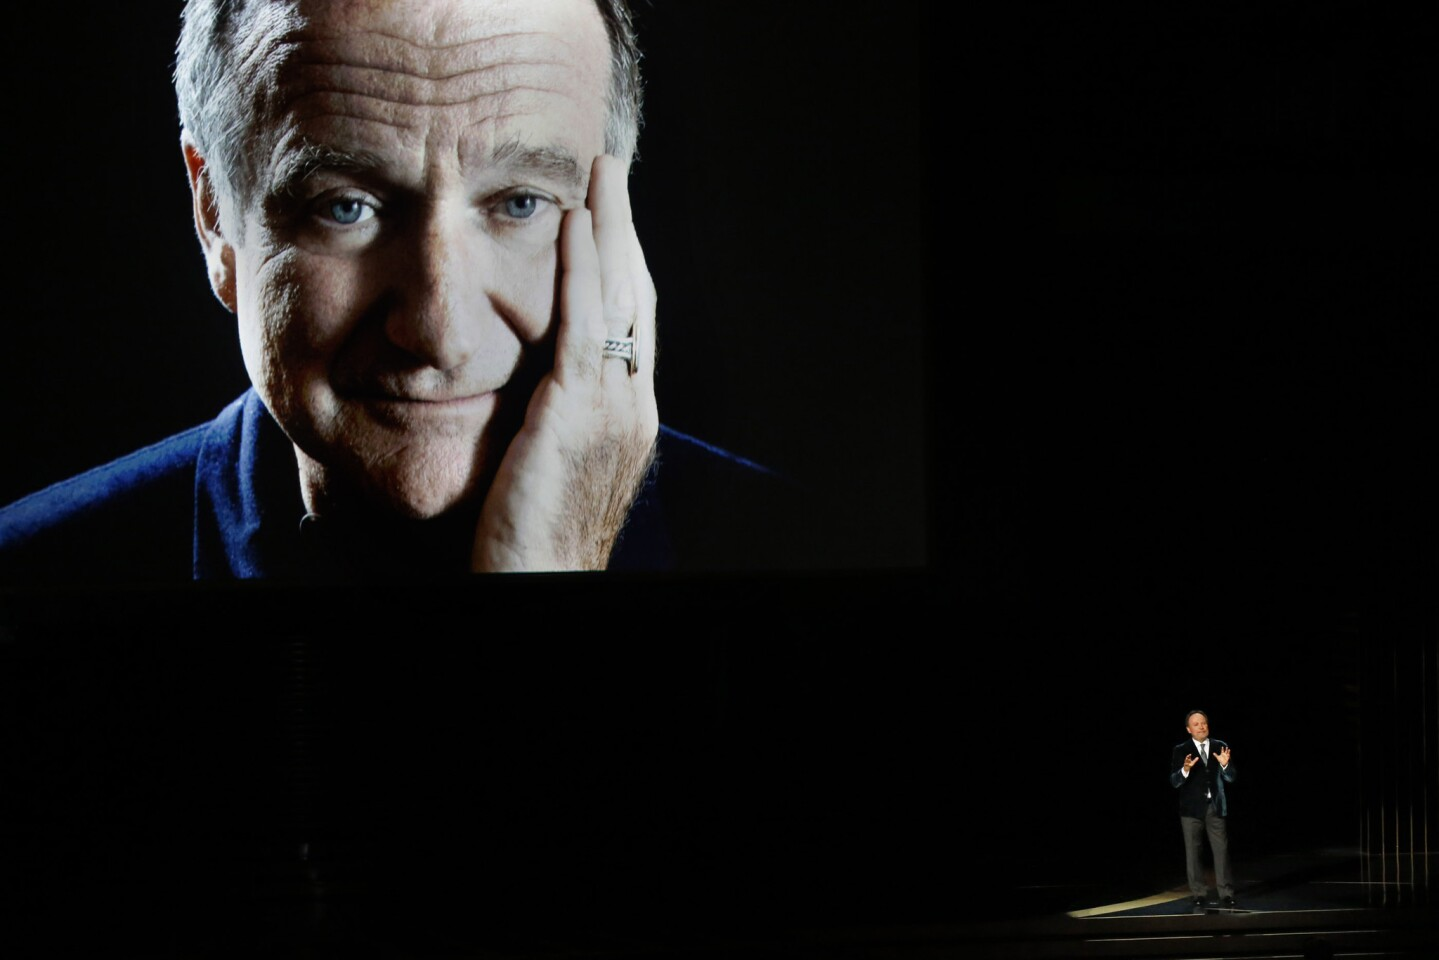 Comedian Billy Crystal pays tribute to the late Robin Williams onstage during the 66th Annual Primetime Emmy Awards at Nokia Theatre L.A. LIVE.